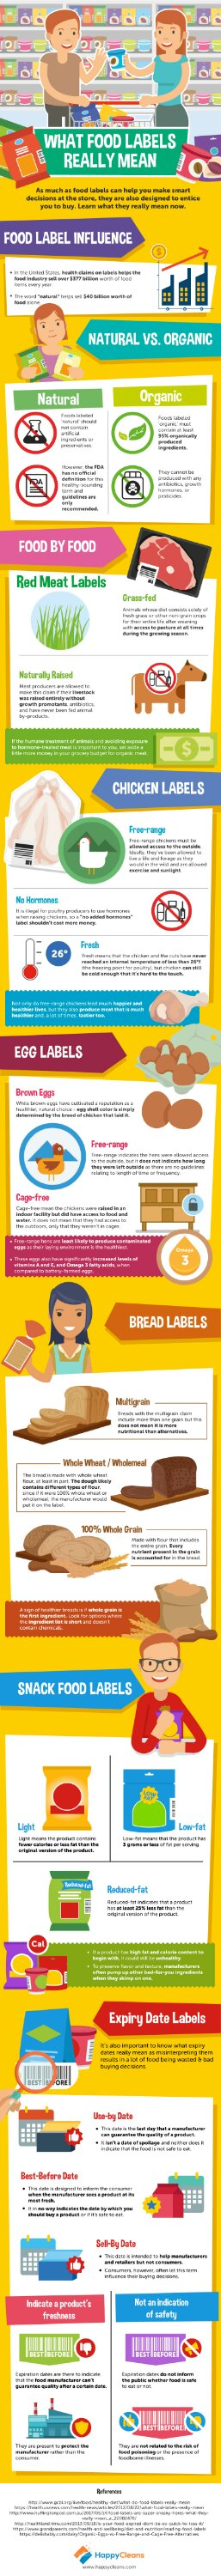 what-food-labels-really-mean785280966.jpg